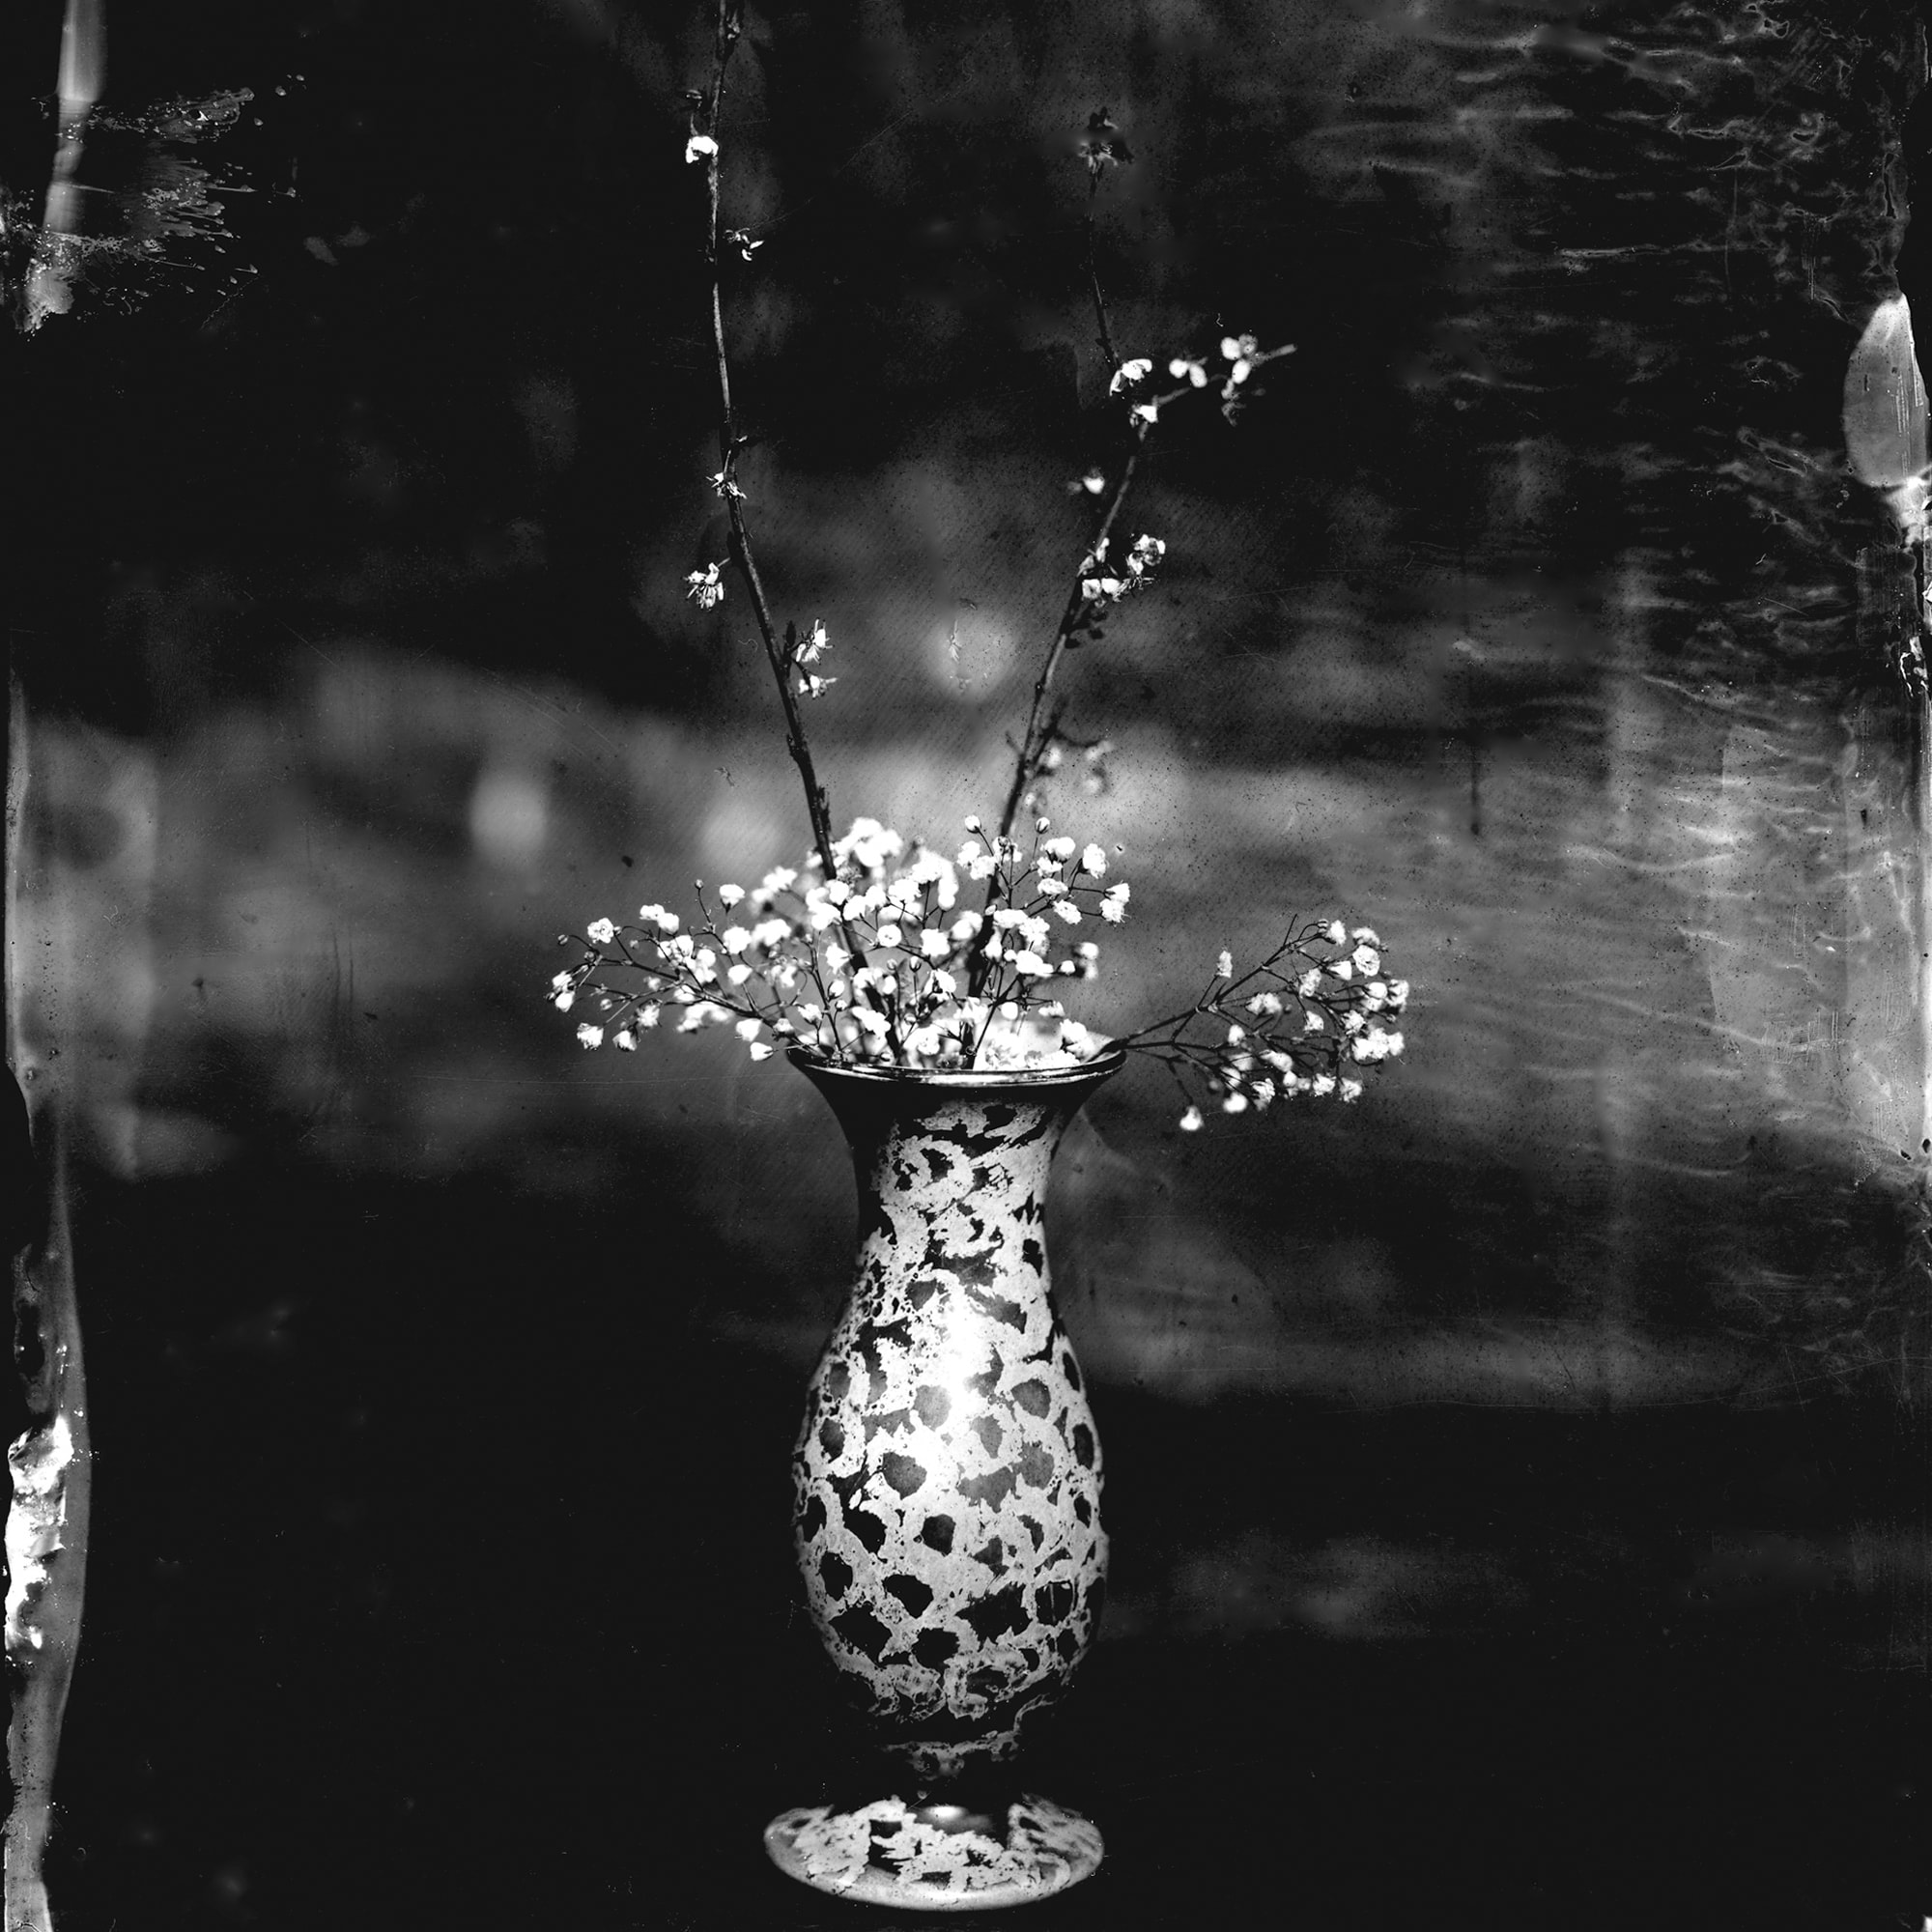 Black and white image of flowers in a patterned vase